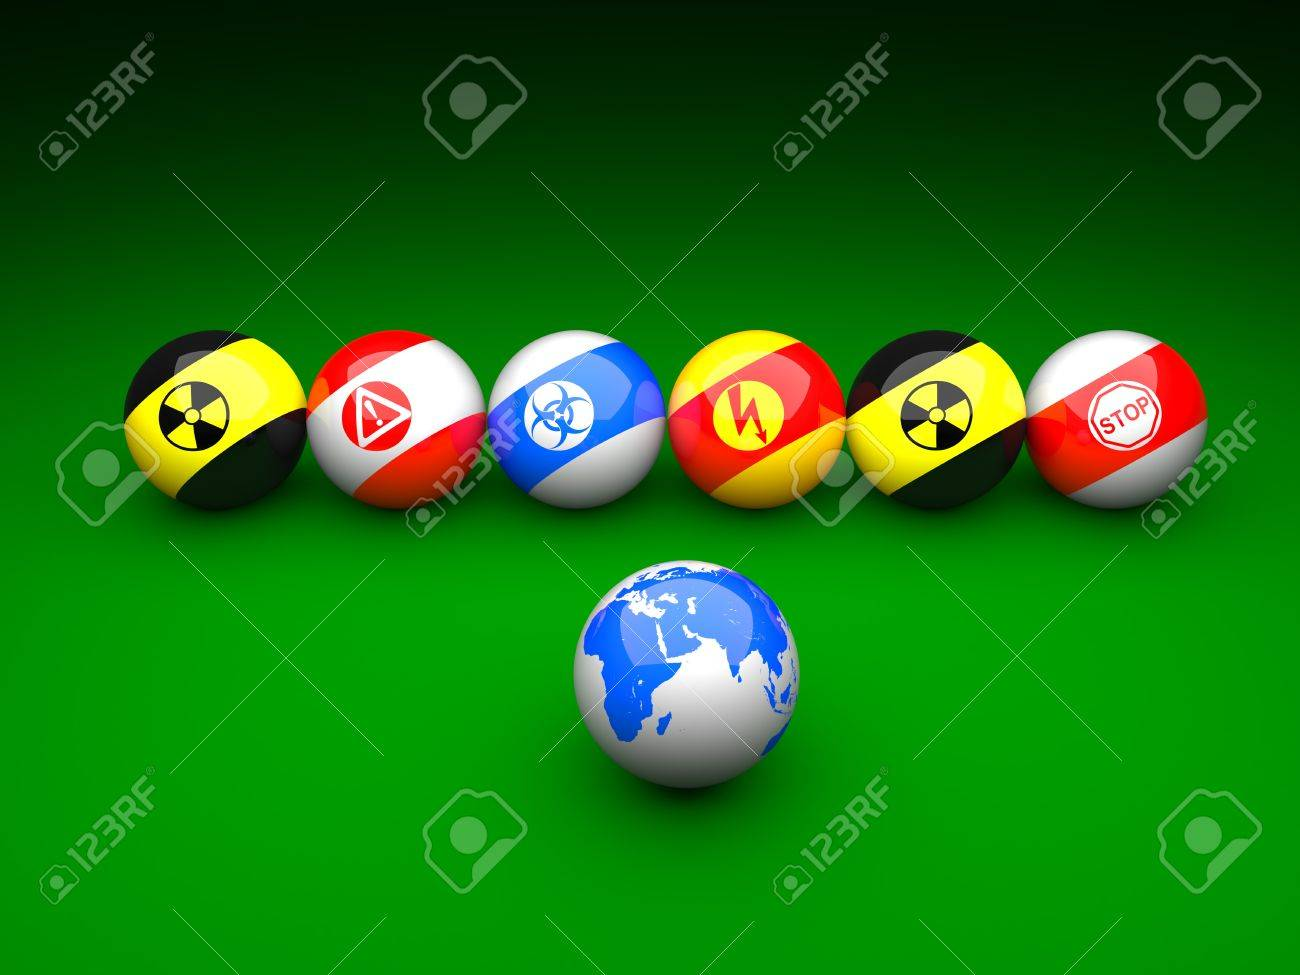 Billiard balls with danger signs and earth on a green background Stock Photo - 9191602